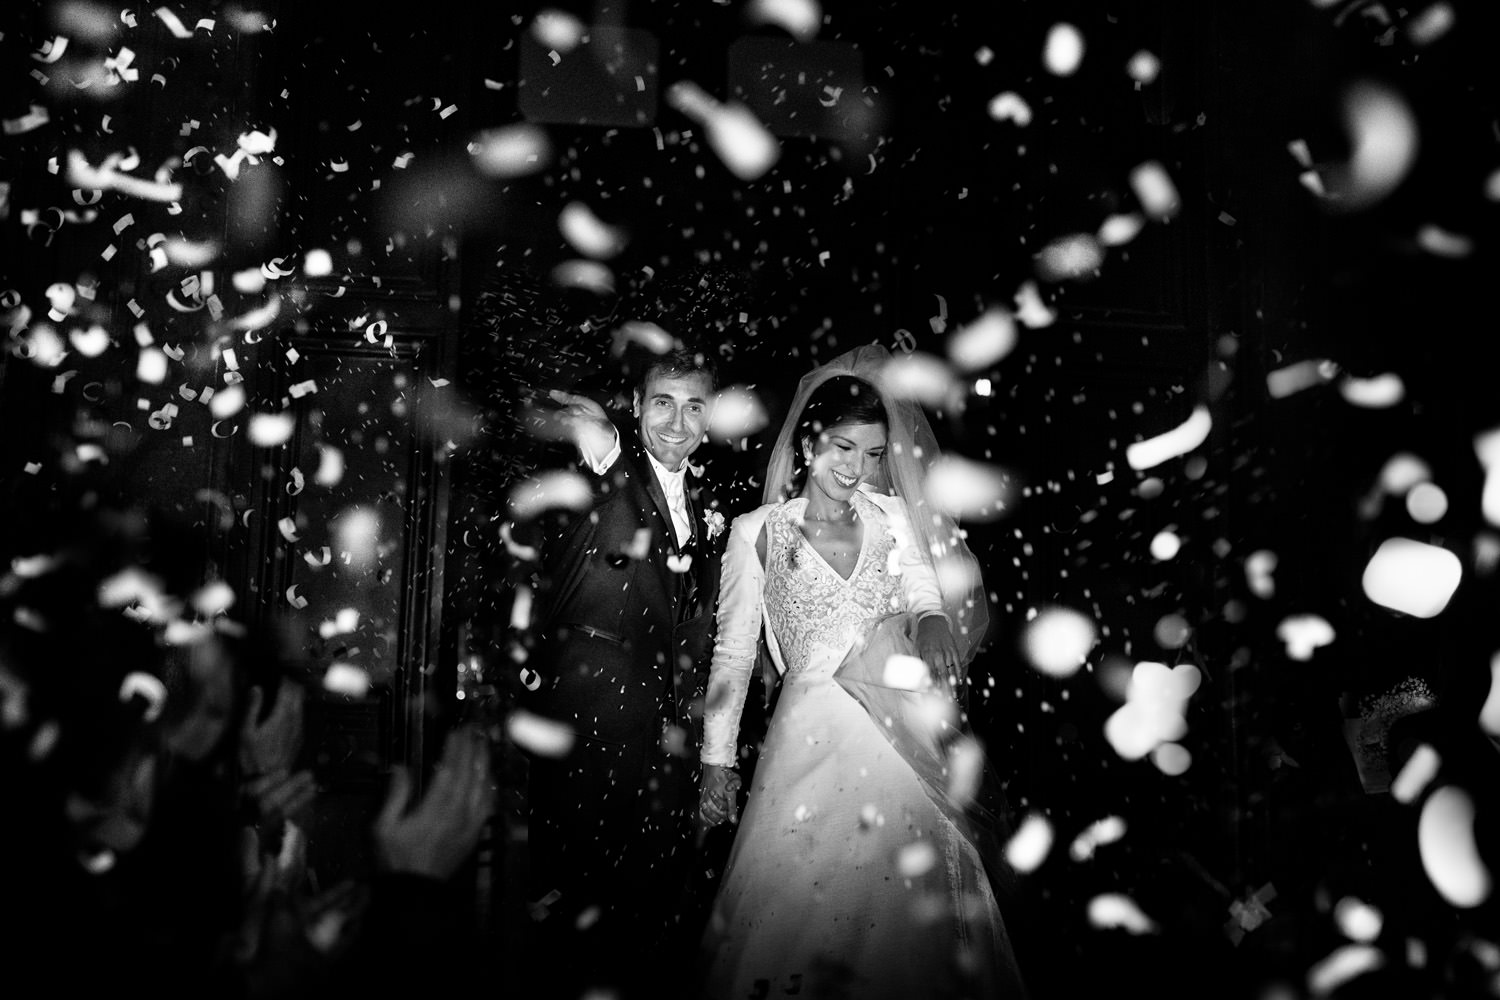 rise and petal. Wedding moment